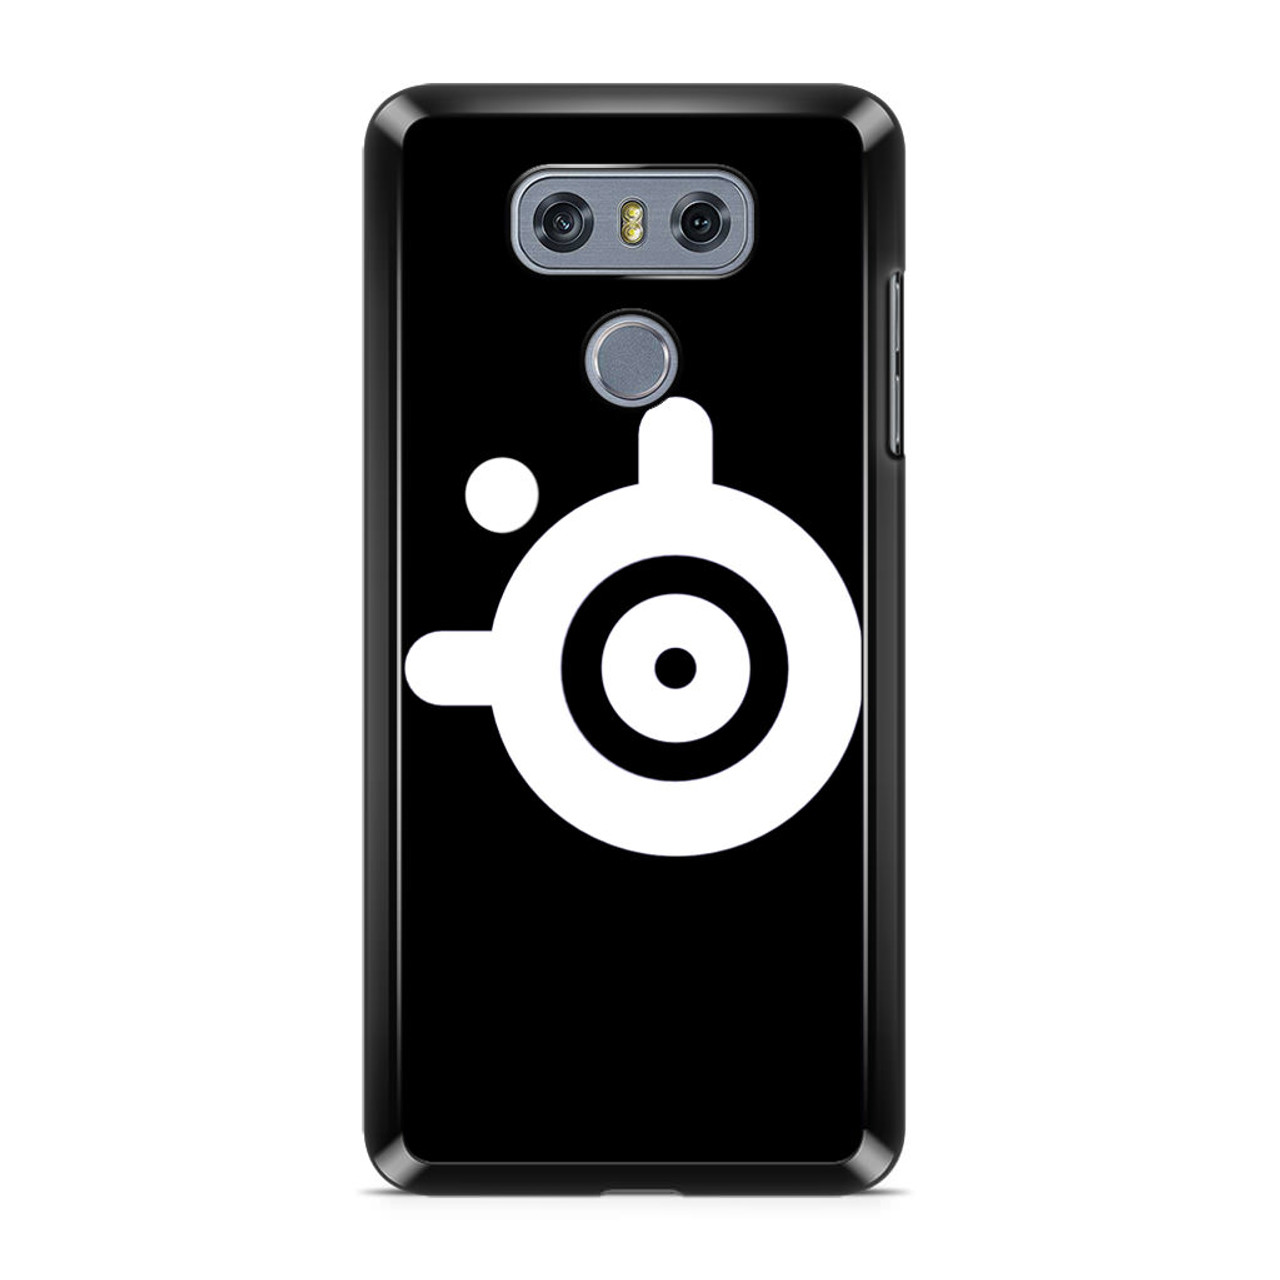 c956259489aa Steelseries Logo LG G6 Case - CASESHUNTER